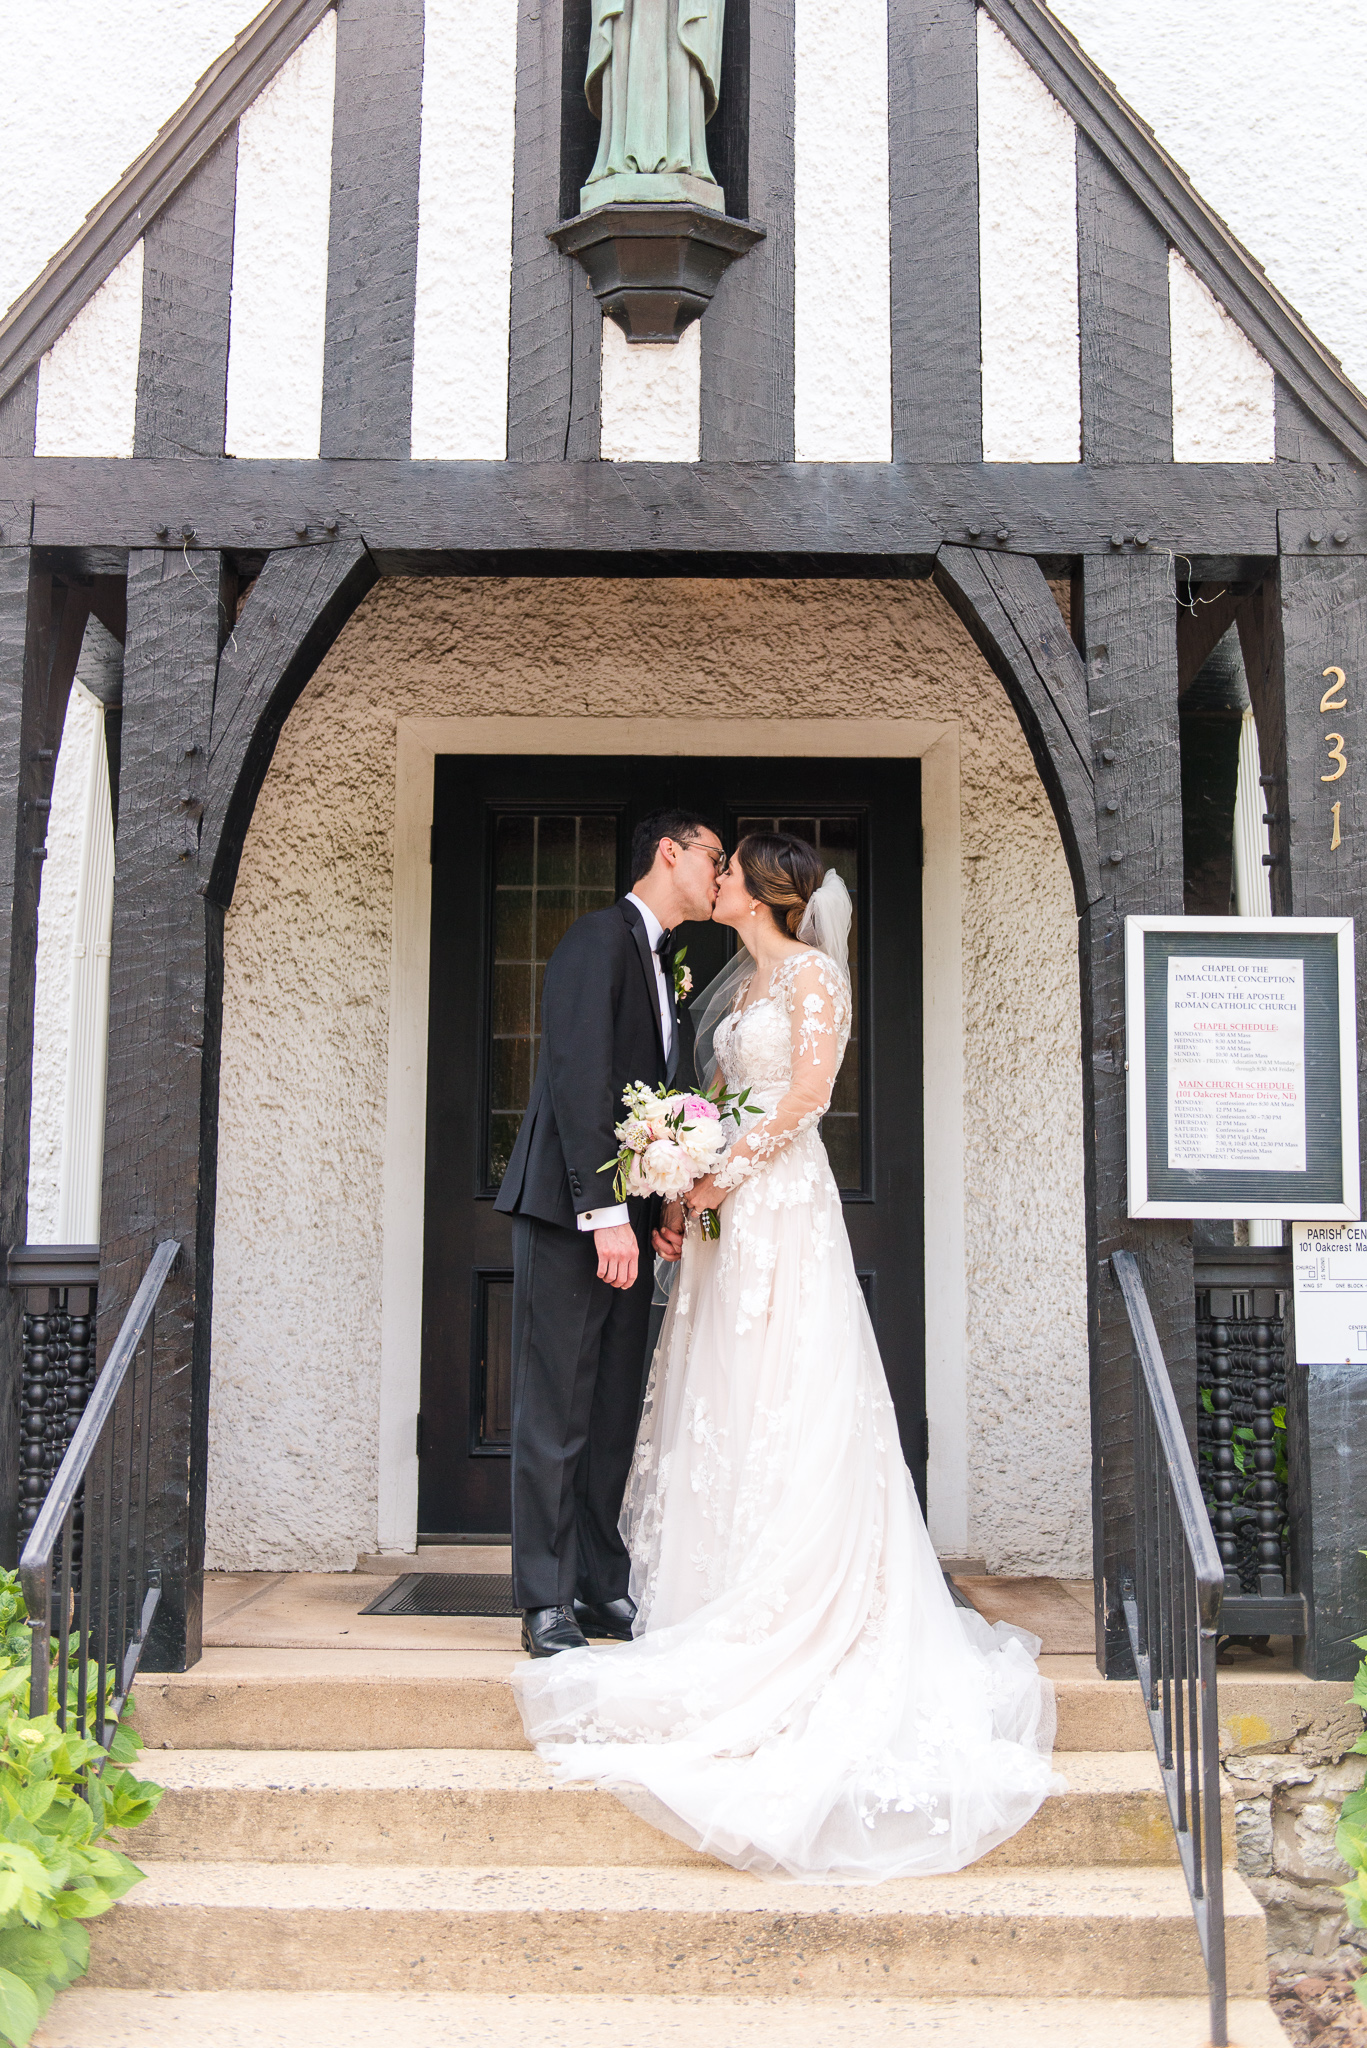 A traditional Catholic bride and groom share their first kiss as husband and wife outside the Chapel of Immaculate Conception in Leesburg, Northern Virginia